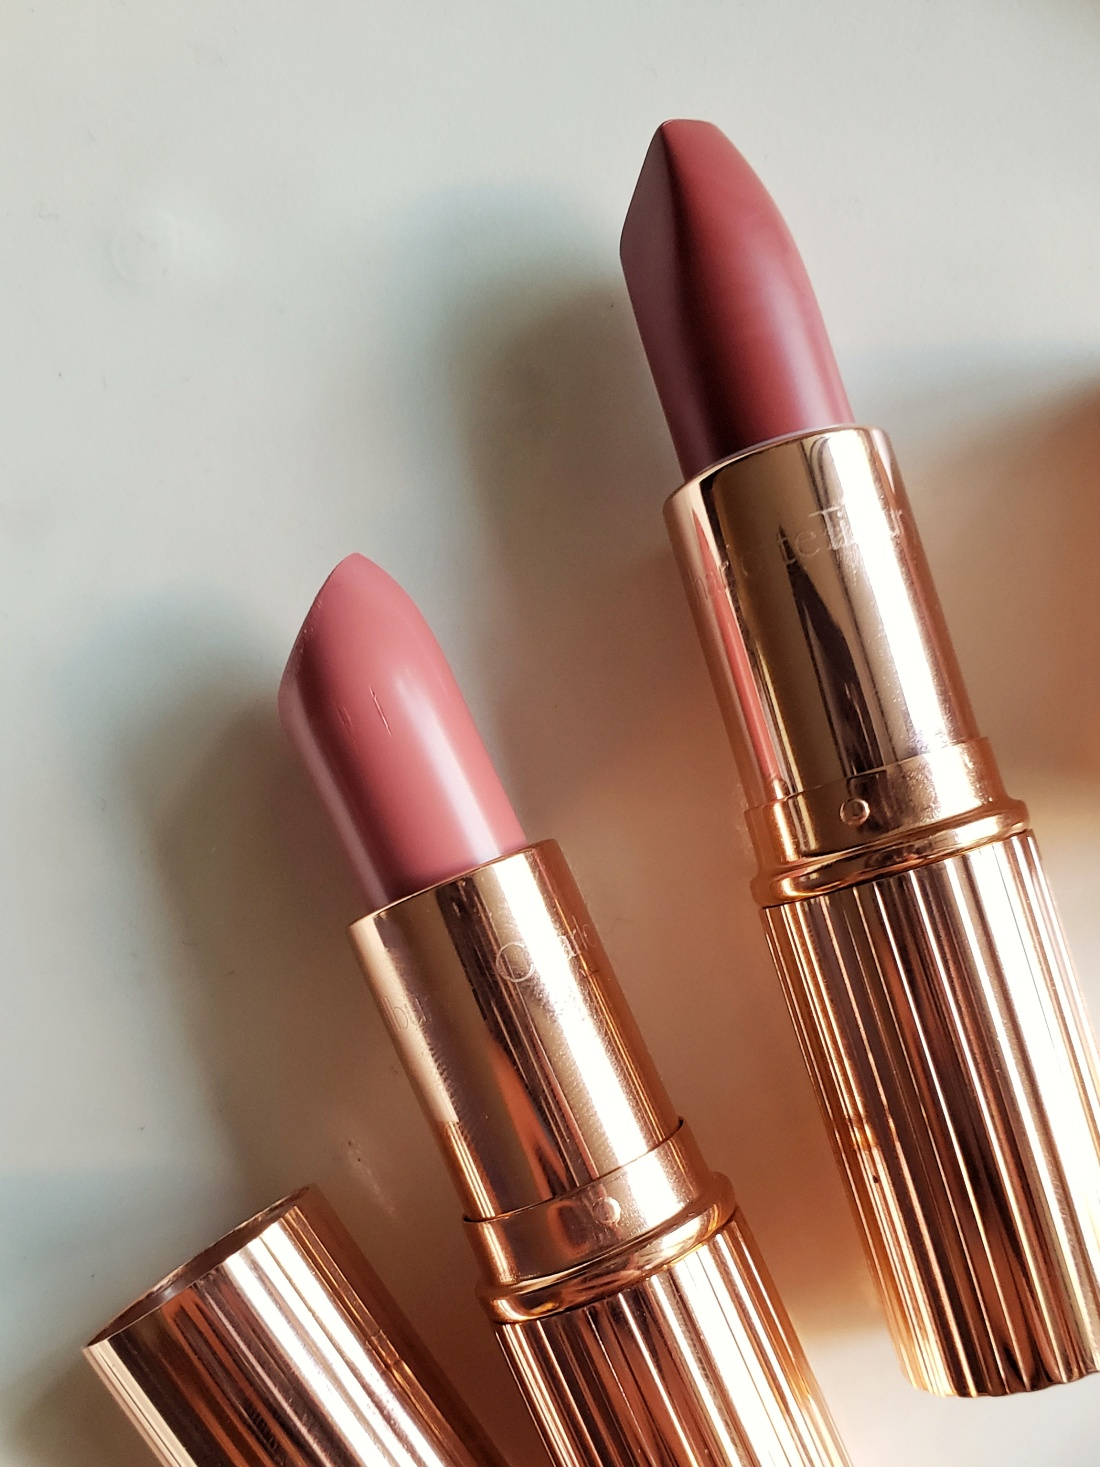 Charlotte Tilbury The Pretty Pink Lipsticks